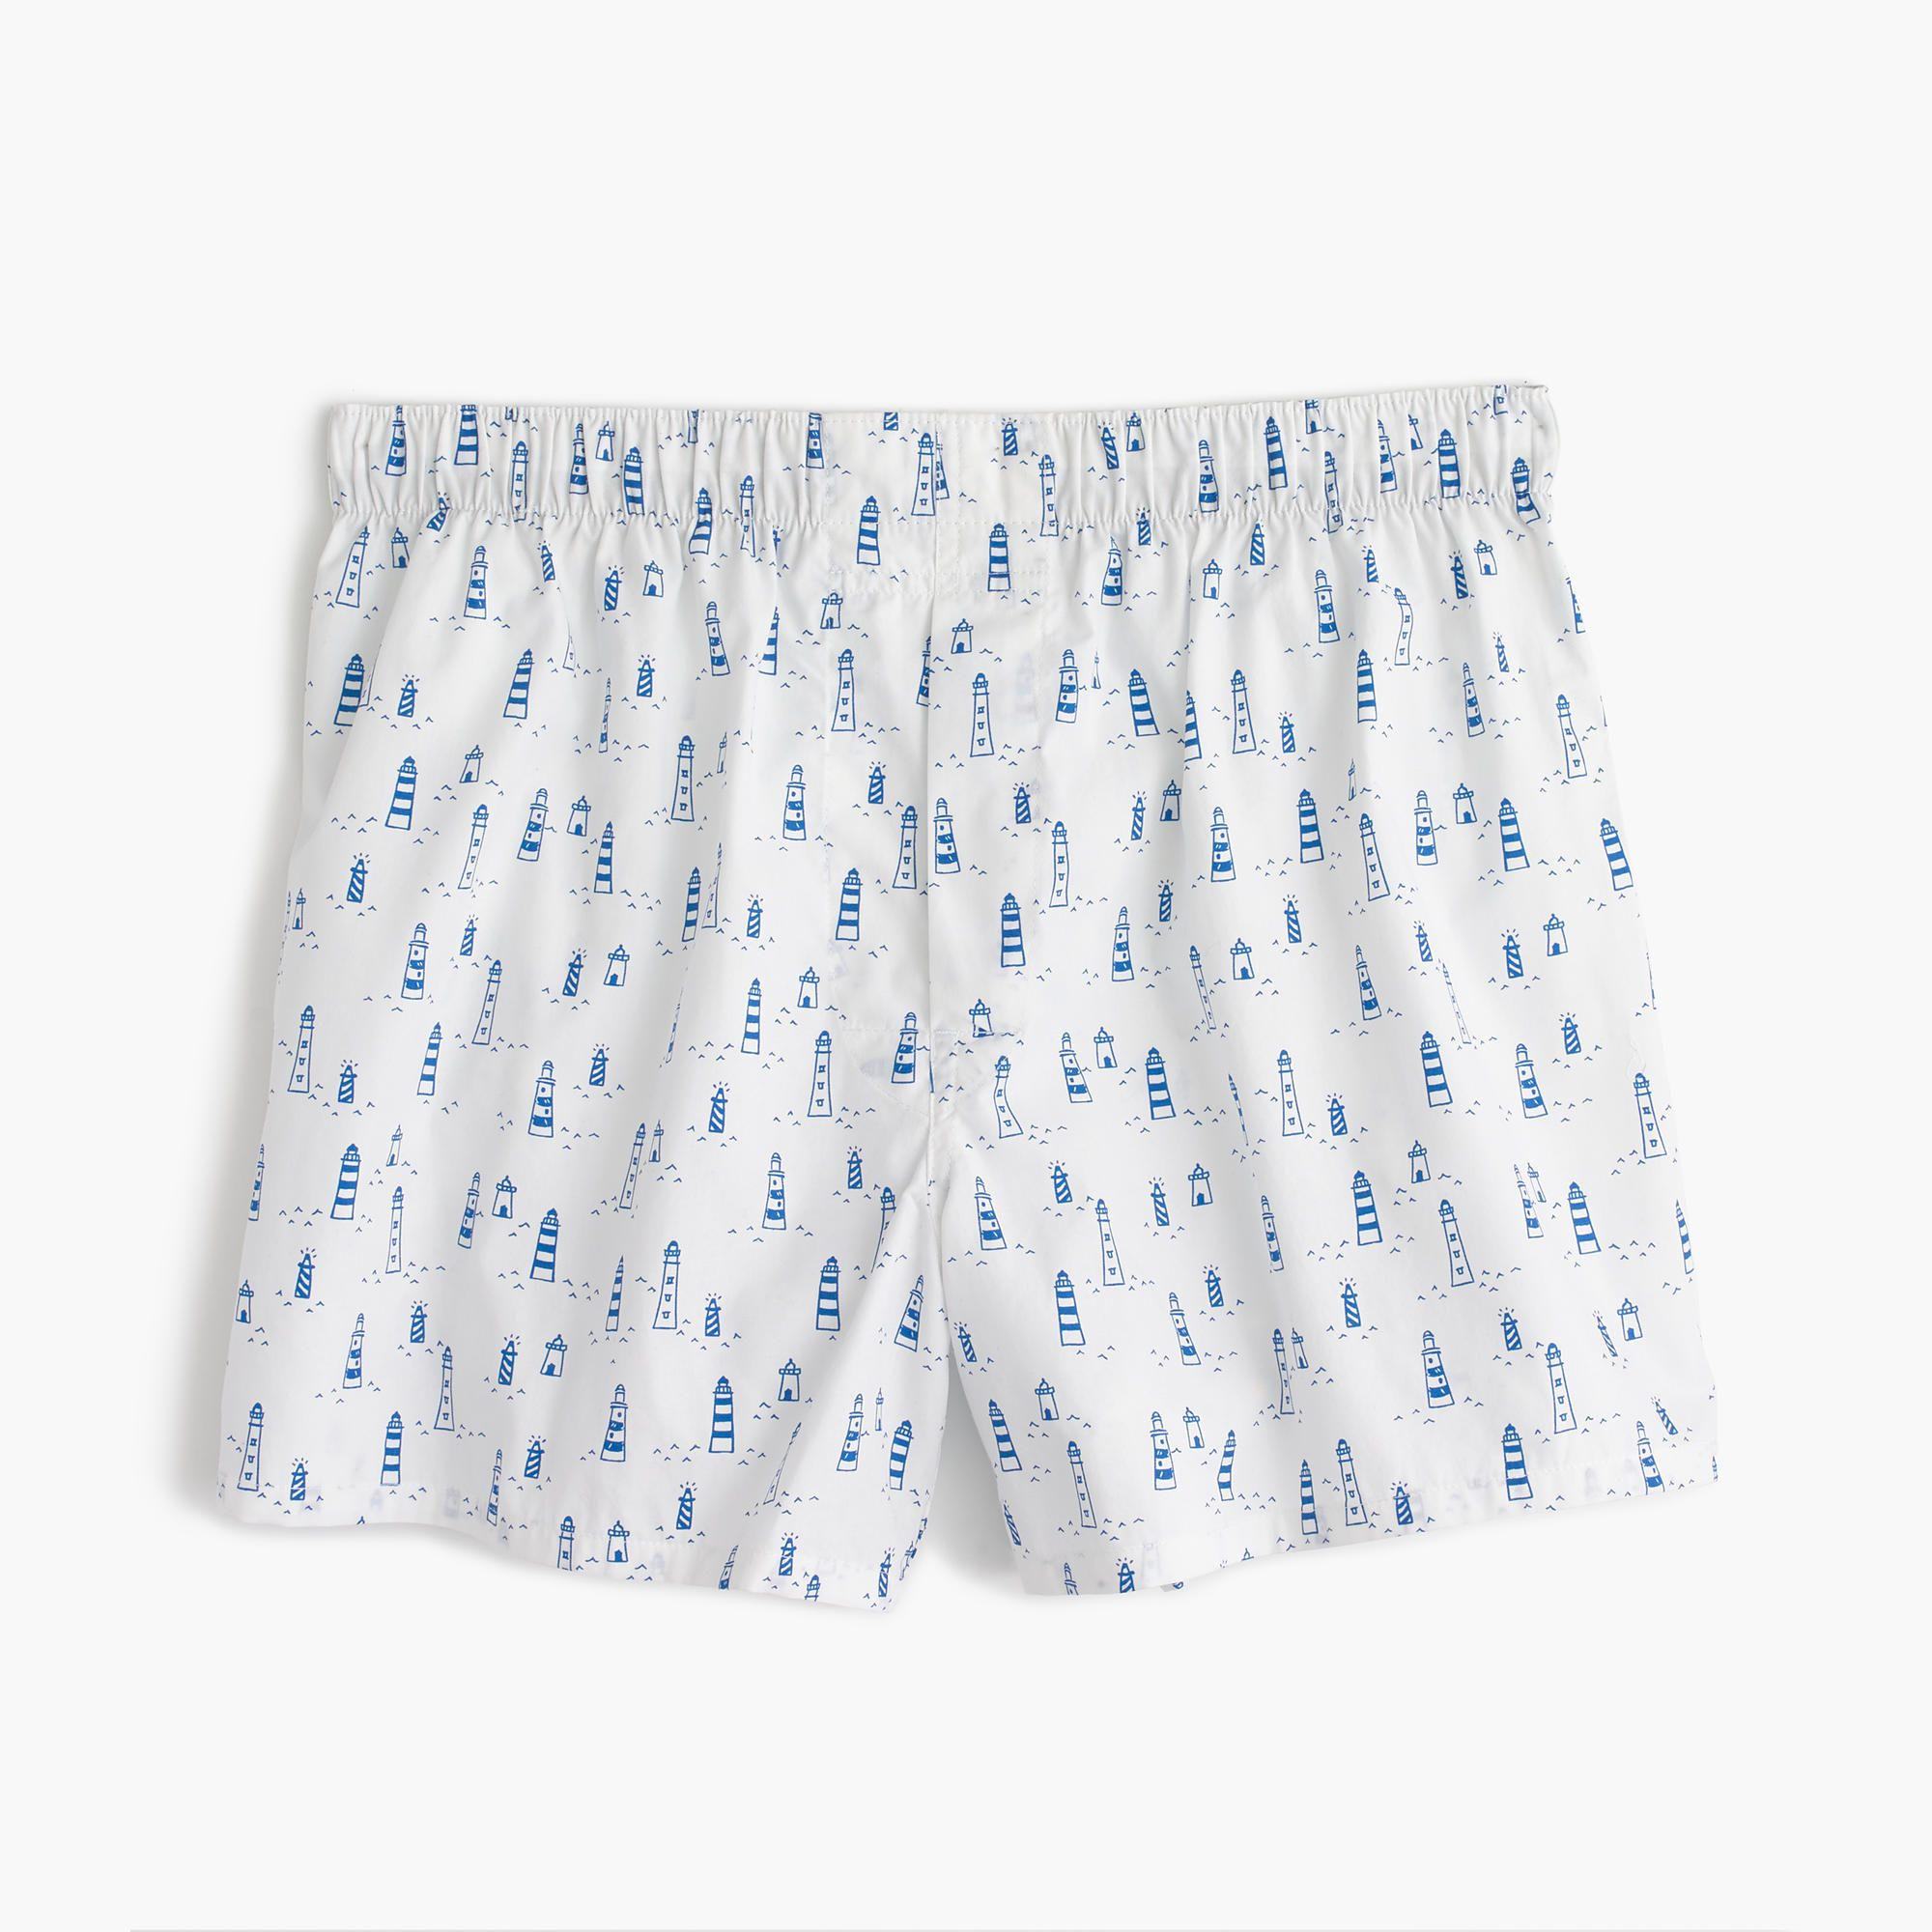 30efa7579580 Shop the Lighthouse Print Boxers at JCrew.com and see our entire selection  of Men's Boxers.